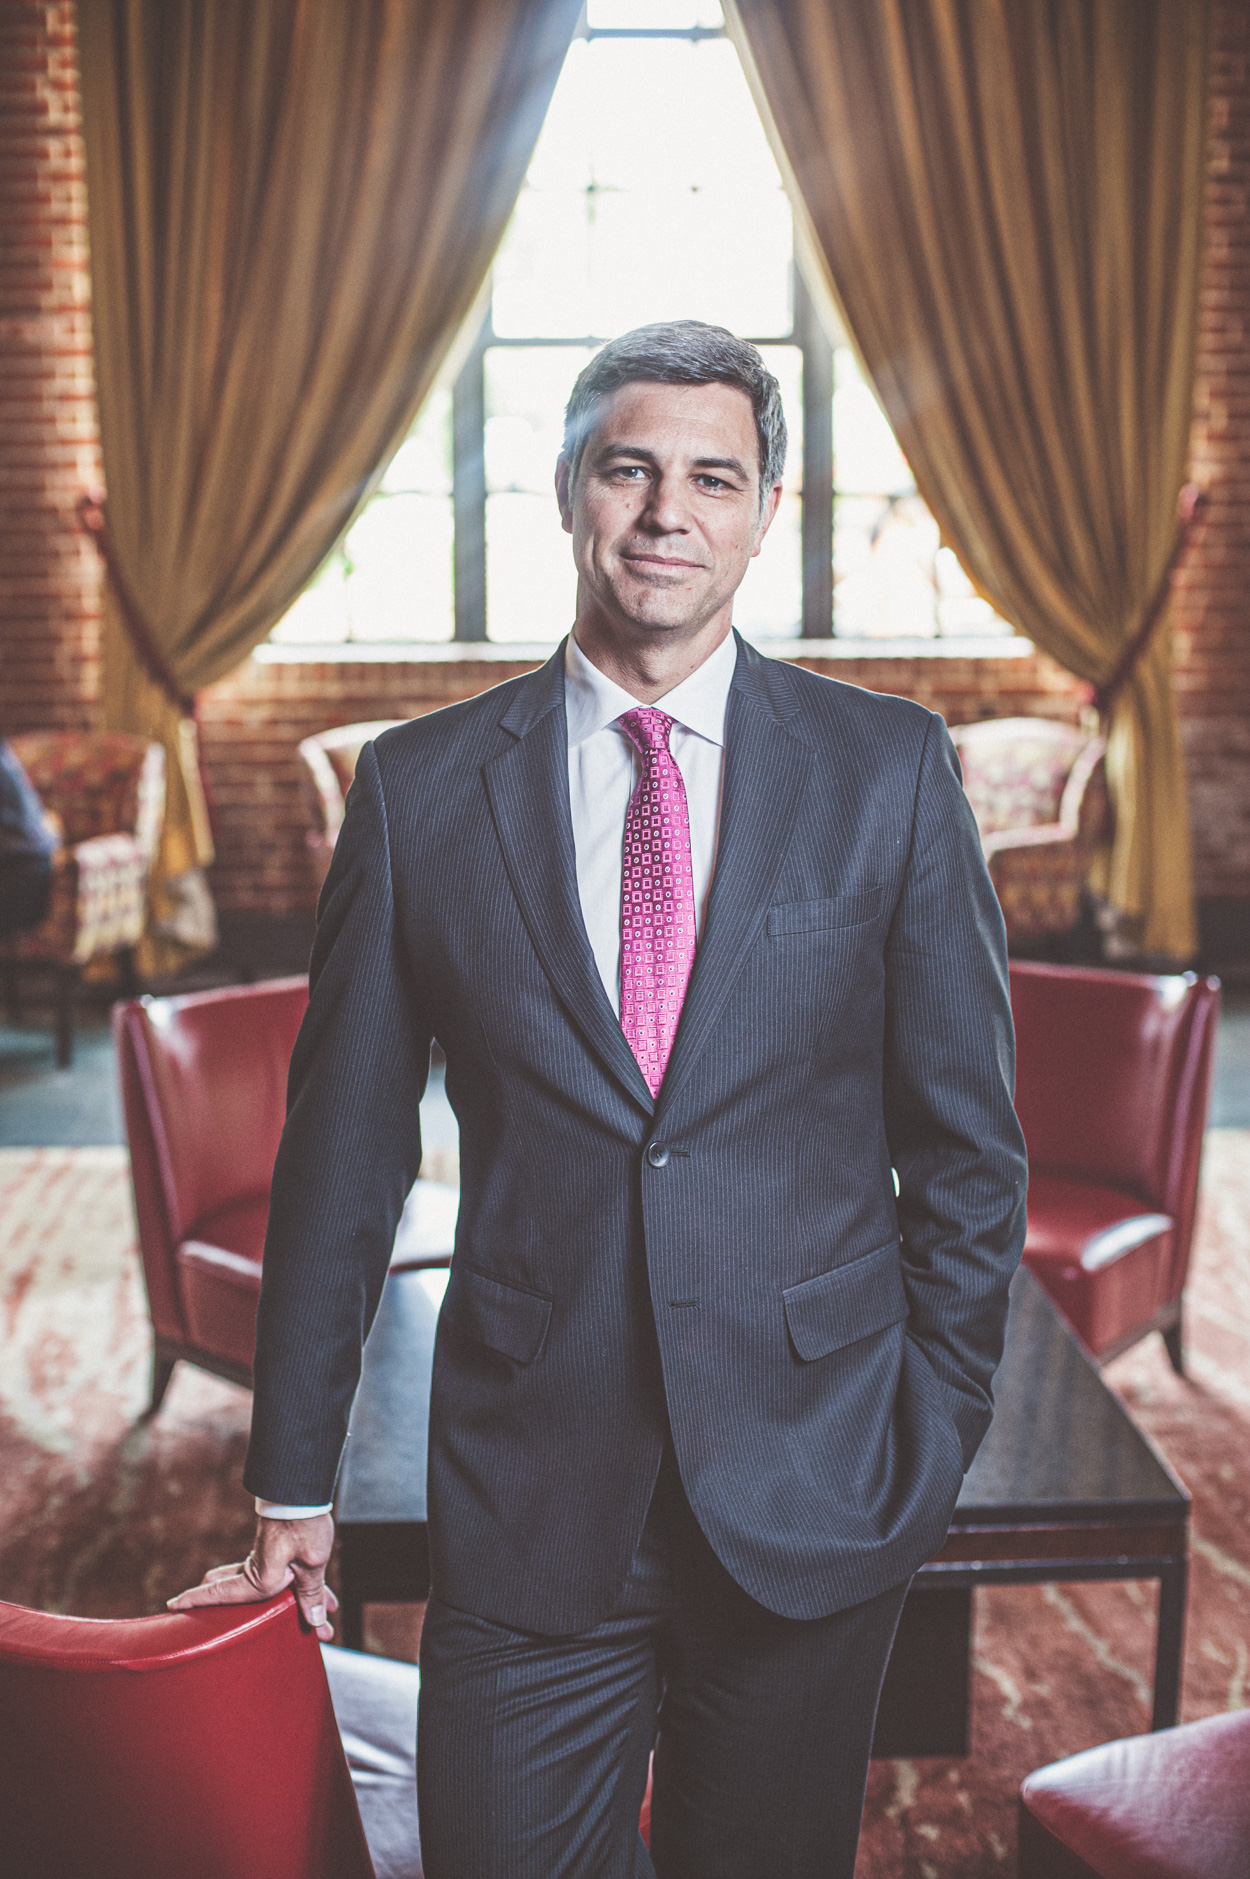 The Ritz-Calton CEO Peter Cole